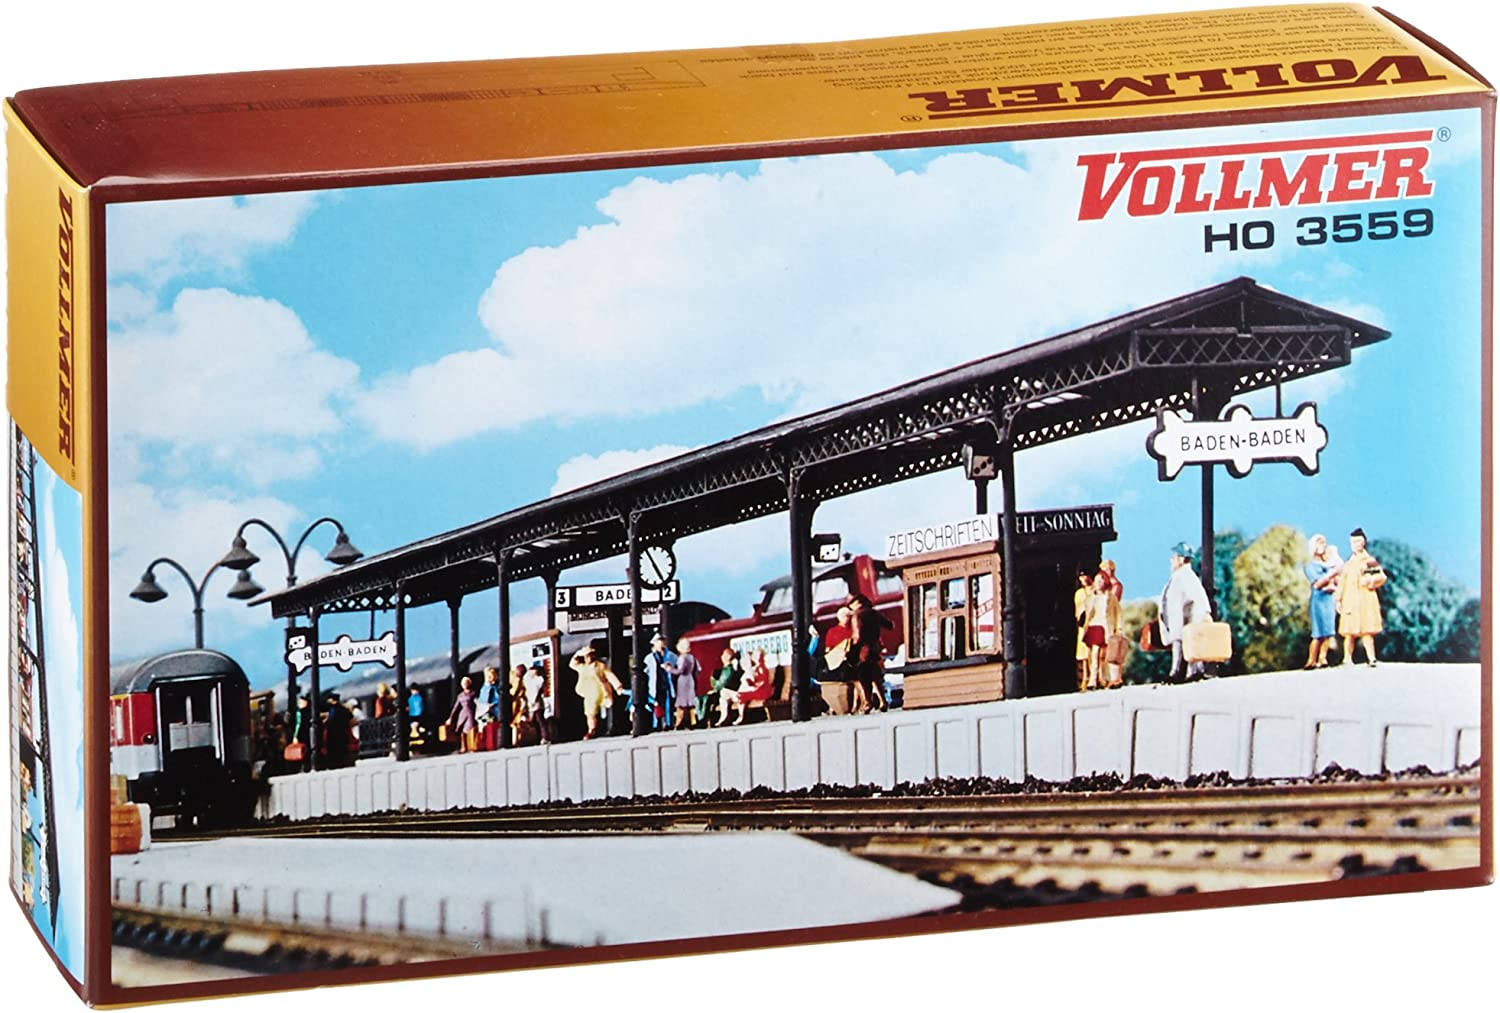 """B0002OHED0 Vollmer 43559 Station Platform w/Cover & Accessories HO Scale Plastic Building Kit 40-1/2 x 1-7/8 x 2-5/8"""" or 102 x 4.8 x 6.6 cm 81WOAzby9tL.SL1500_"""